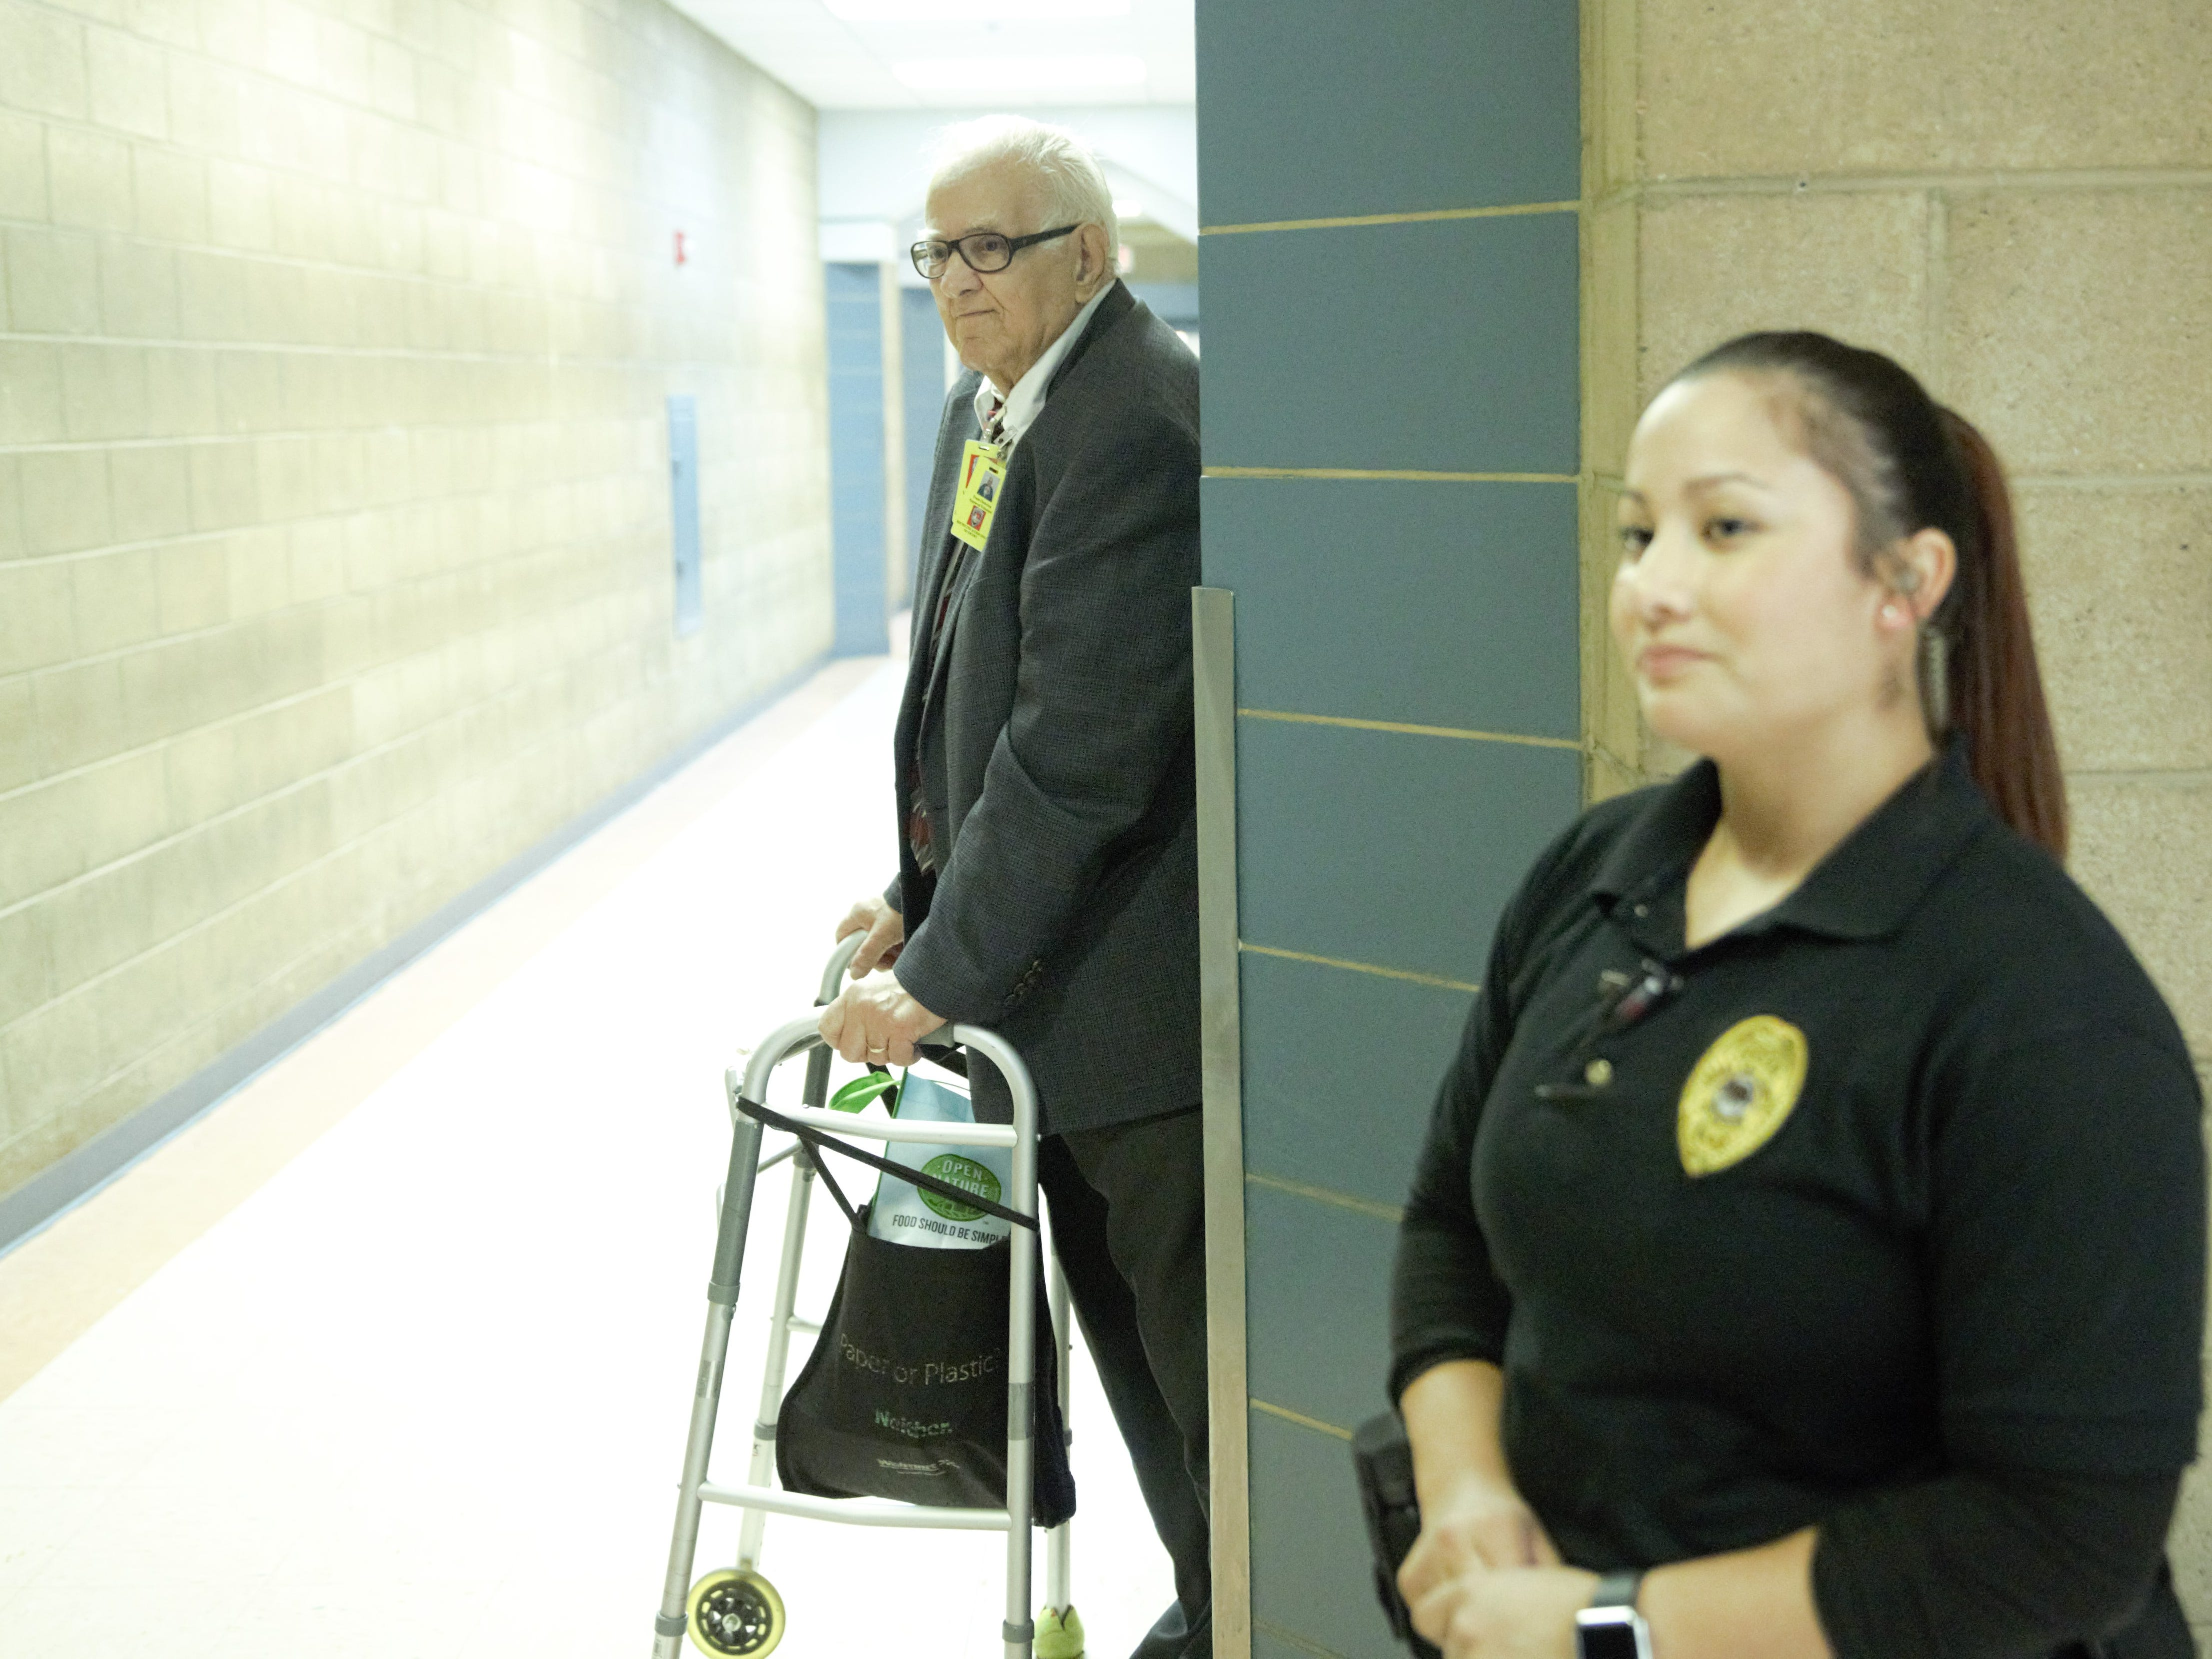 Frank Ontiveros, 86, says he has been regularly visiting inmates in the Doña Ana County Detention Center for 26 years as a volunteer with the Catholic Church. Detention Center officer C. Gomez, right, escorted Ontiveros, Bishop Emeritus Ricardo Ramírez and Sister Marie-Paule Willem through the facility on Tuesday, Dec. 25, 2018.